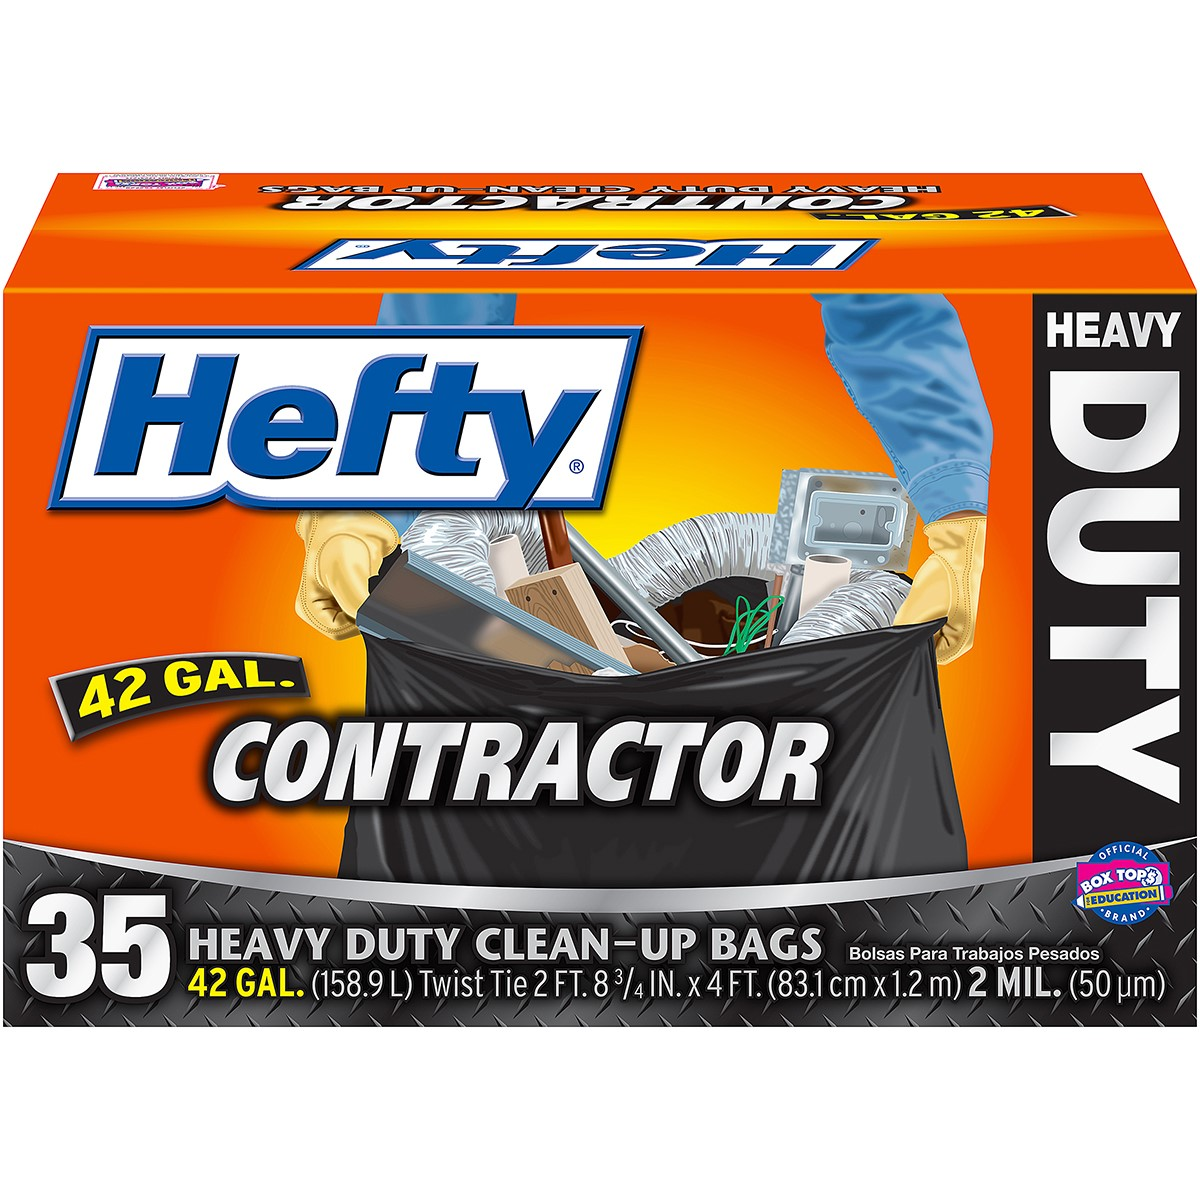 Hefty Heavy Duty Contractor Trash Bag, 42 Gallon, 35 Ct